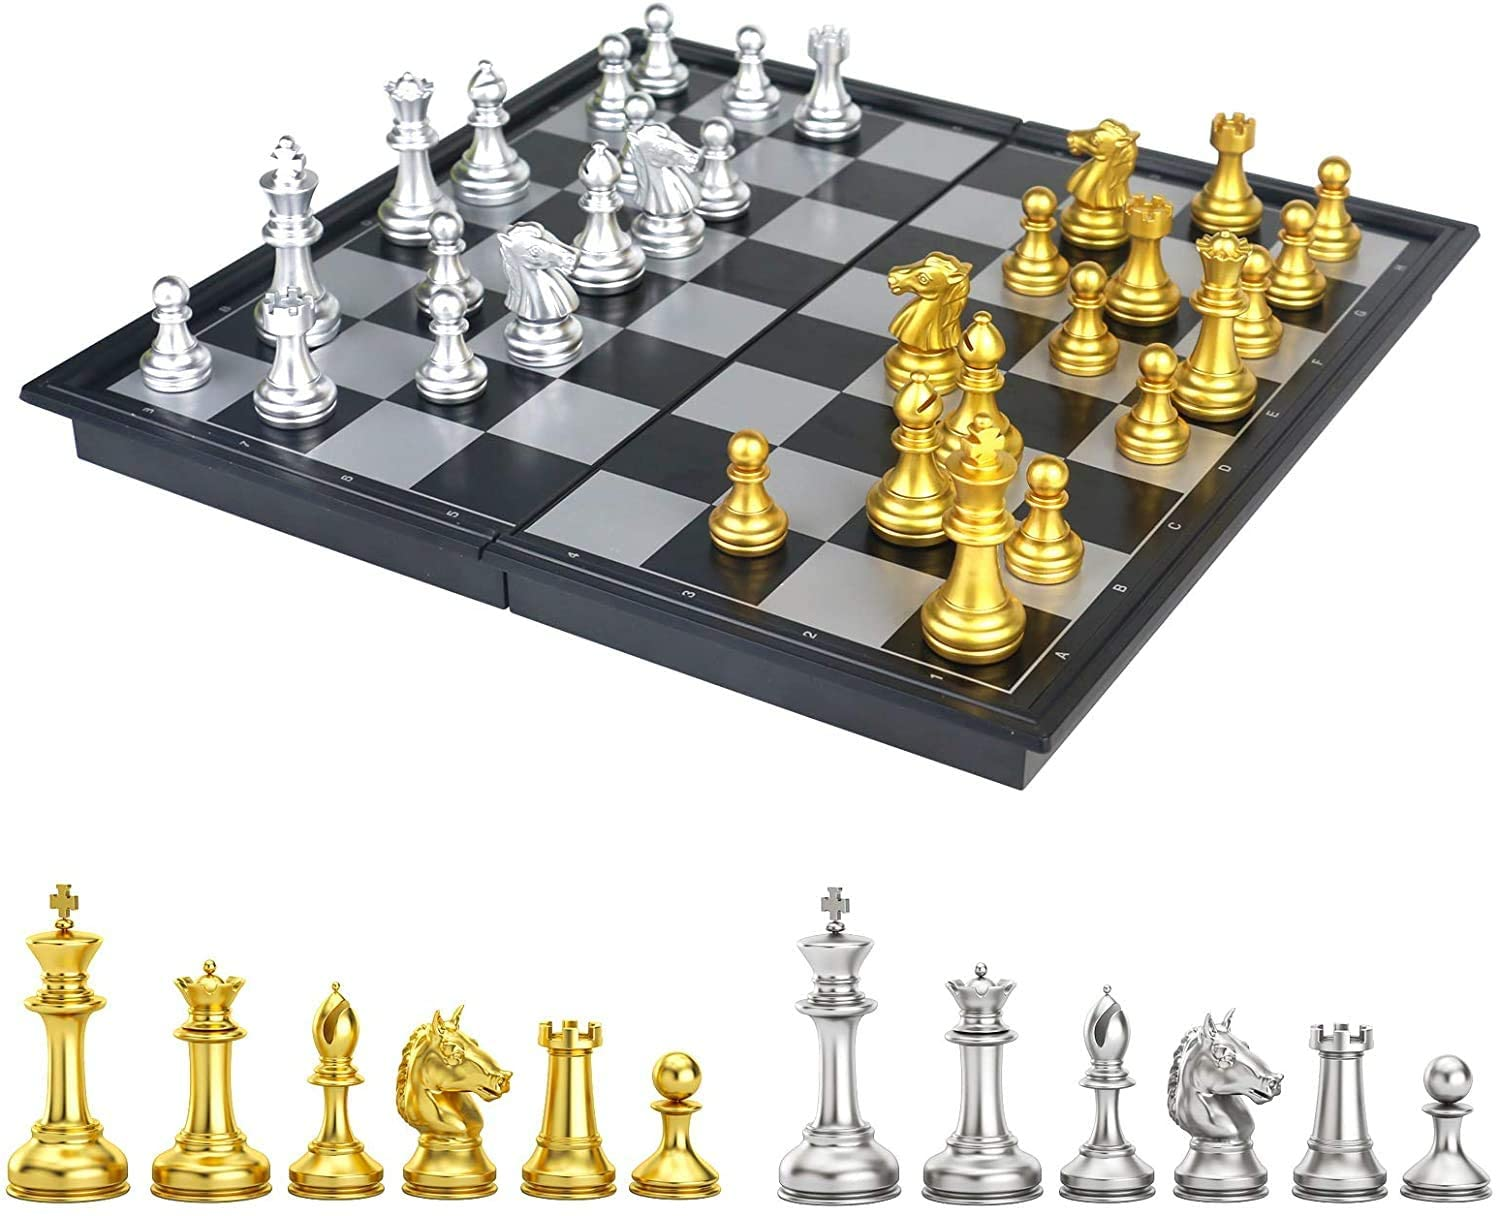 SHFAMHS MAGNETIC TRAVEL CHESS SET BOARD THAT BECOMES A STORAGE COMPARTMENT FOLDING PORTABLE AND EDUCATIONAL BOARD GAME GREAT TRAVEL TOY SET BY BIG MO\u2019S TOYS